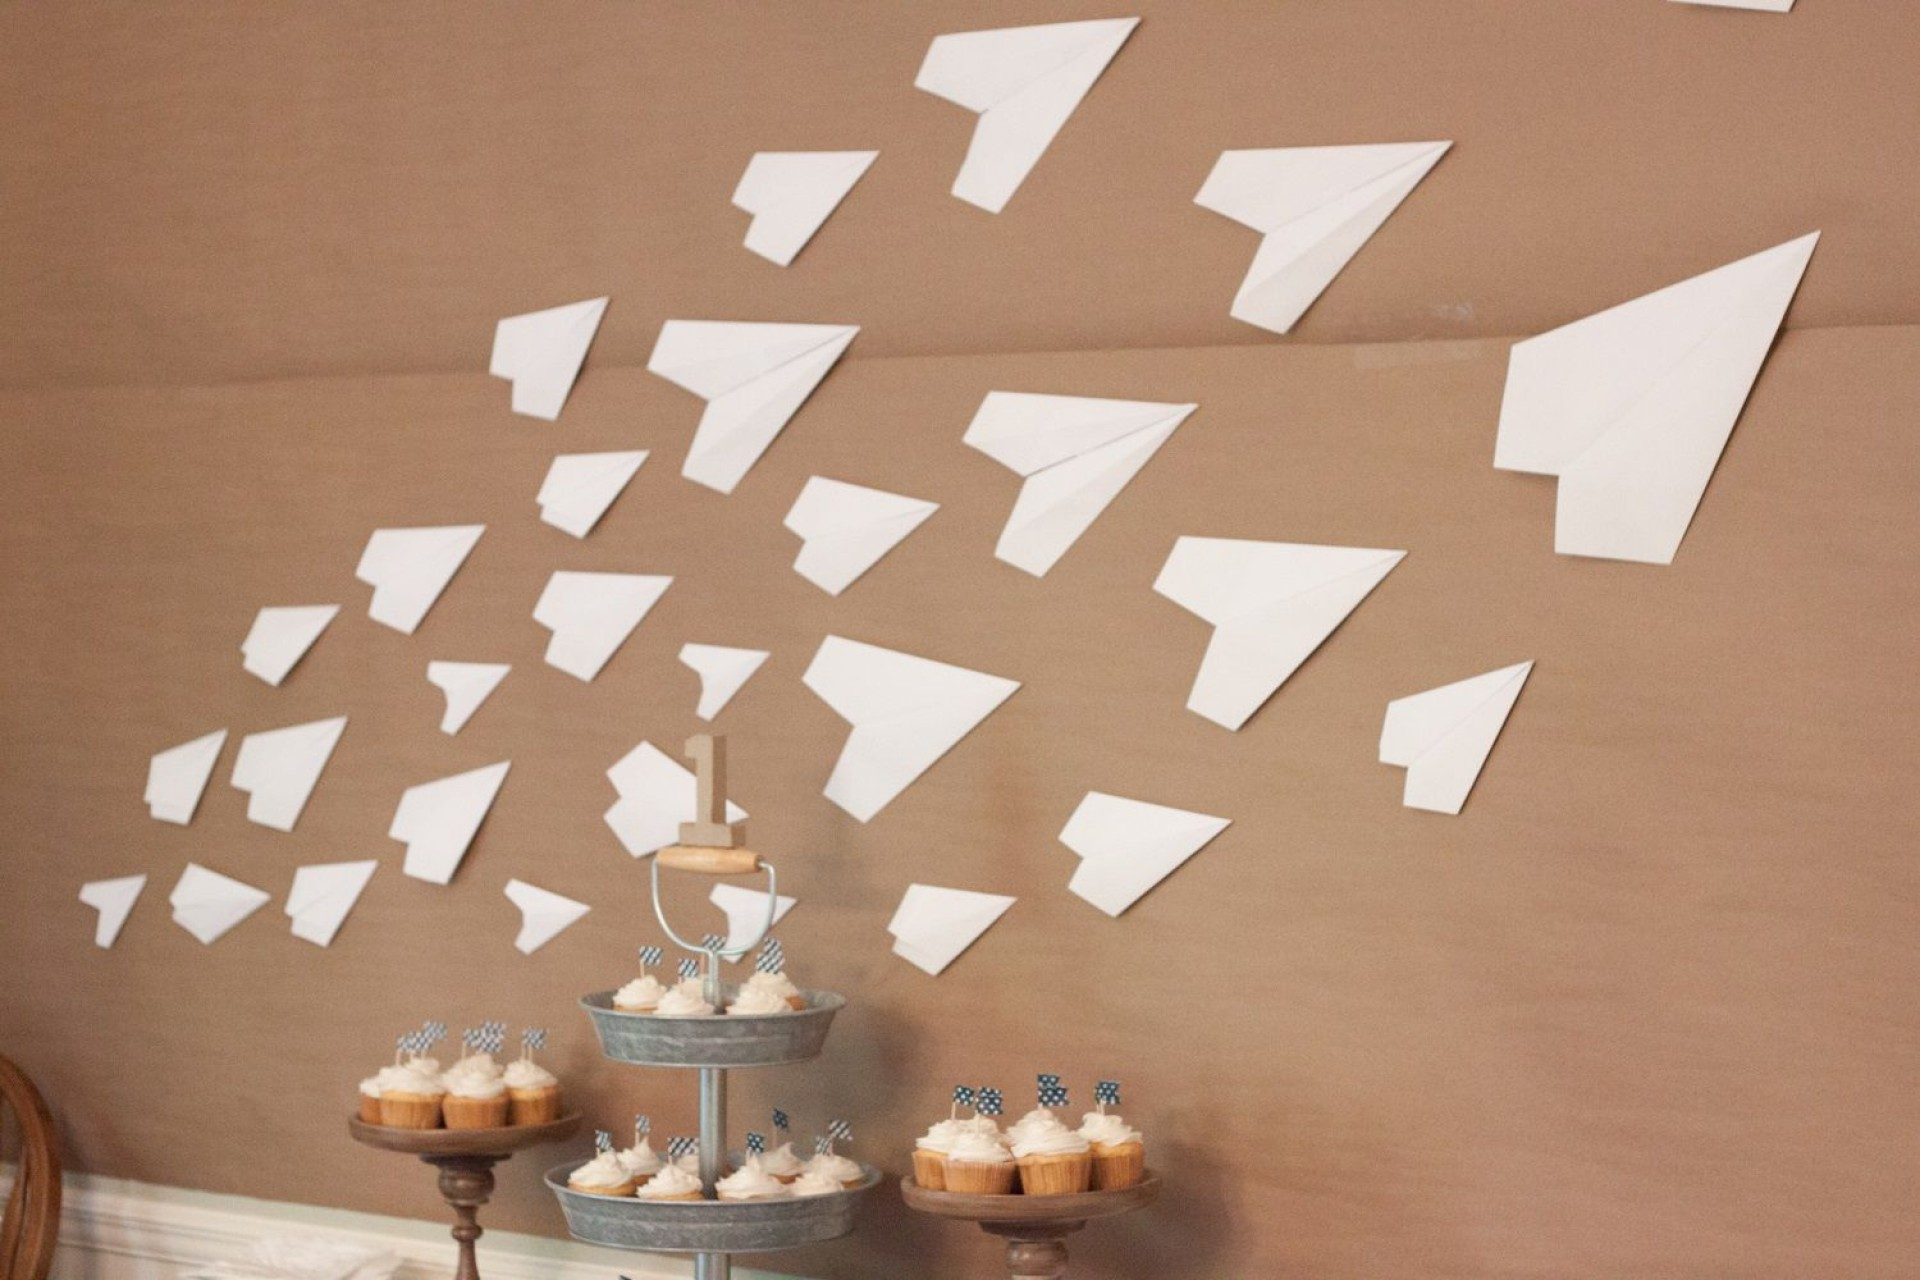 008 Magnificent Free Paper Airplane Design Printable Template Inspiration  Designs-printable Templates1920